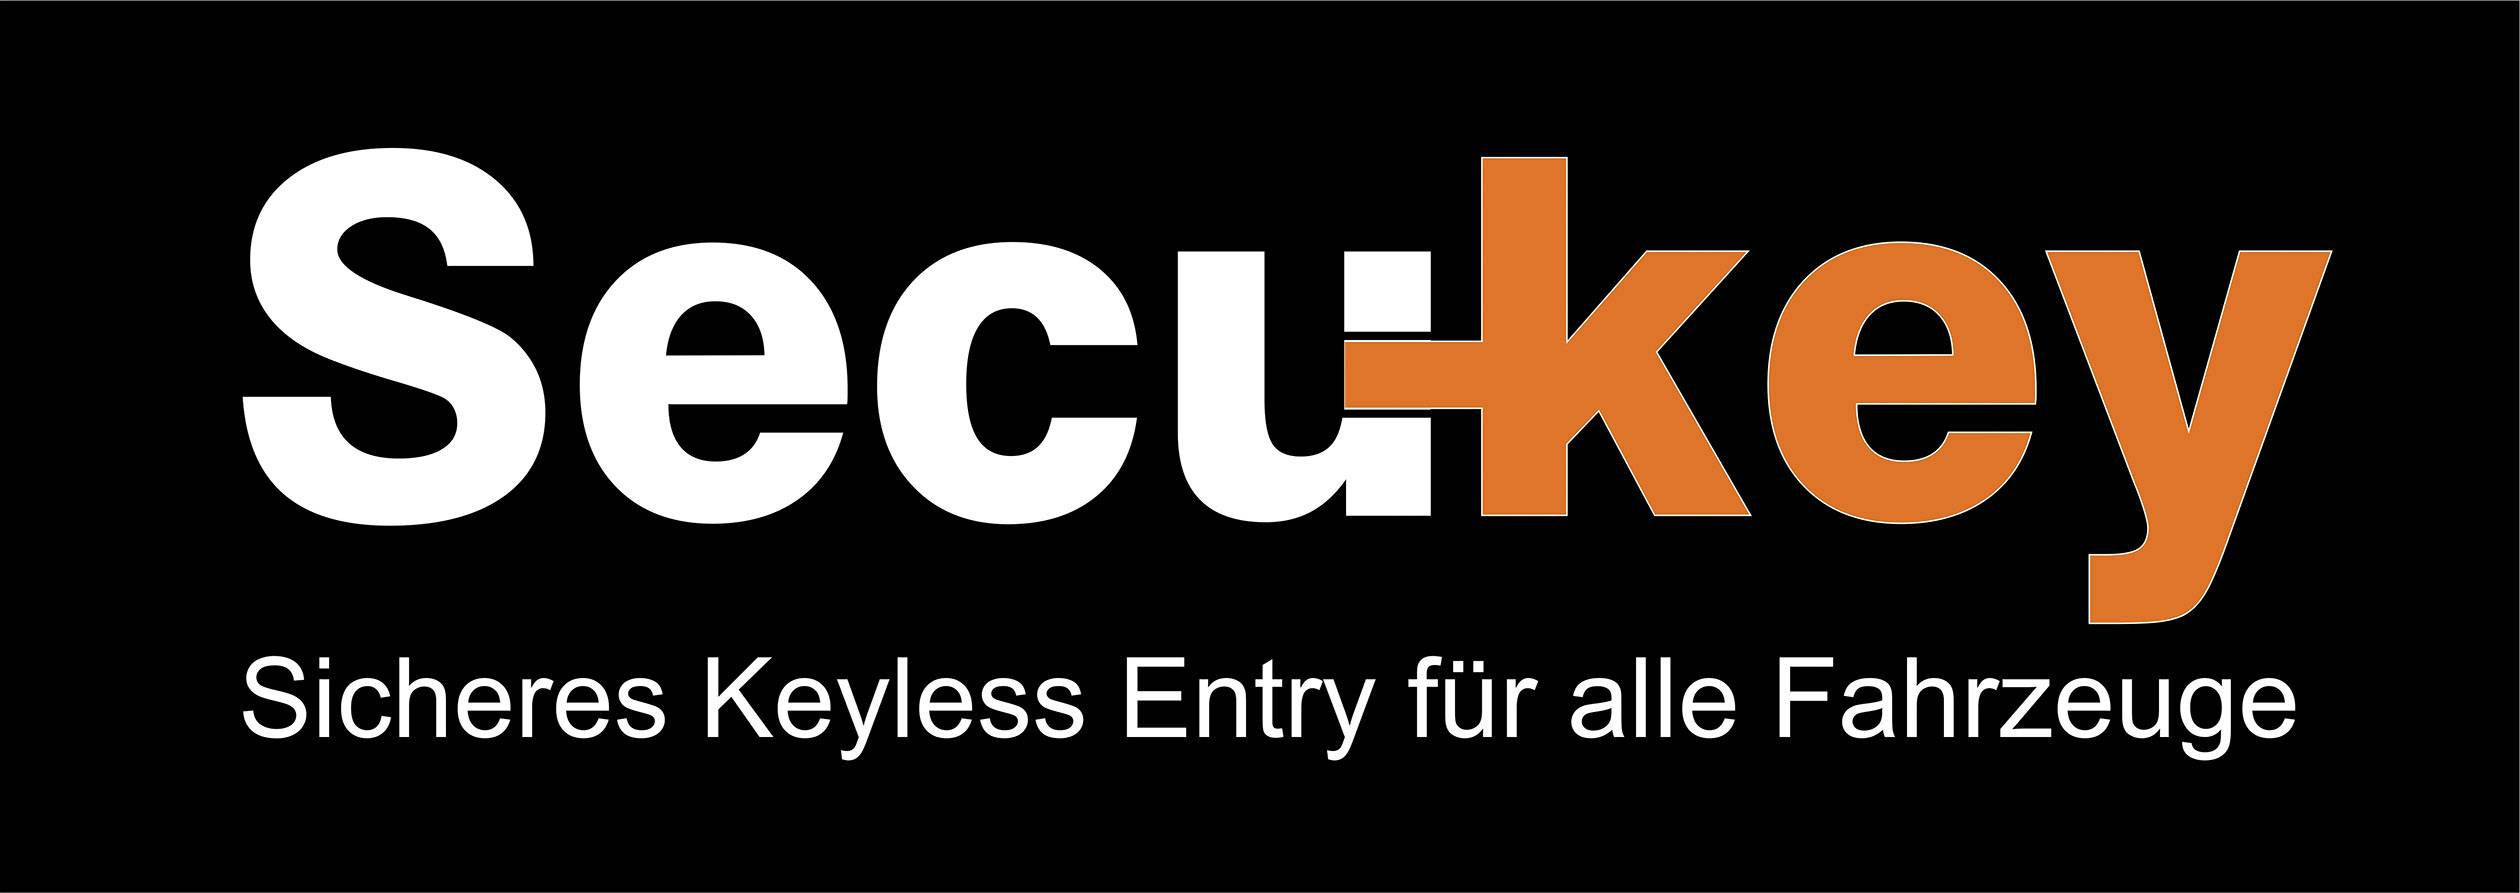 Secukey